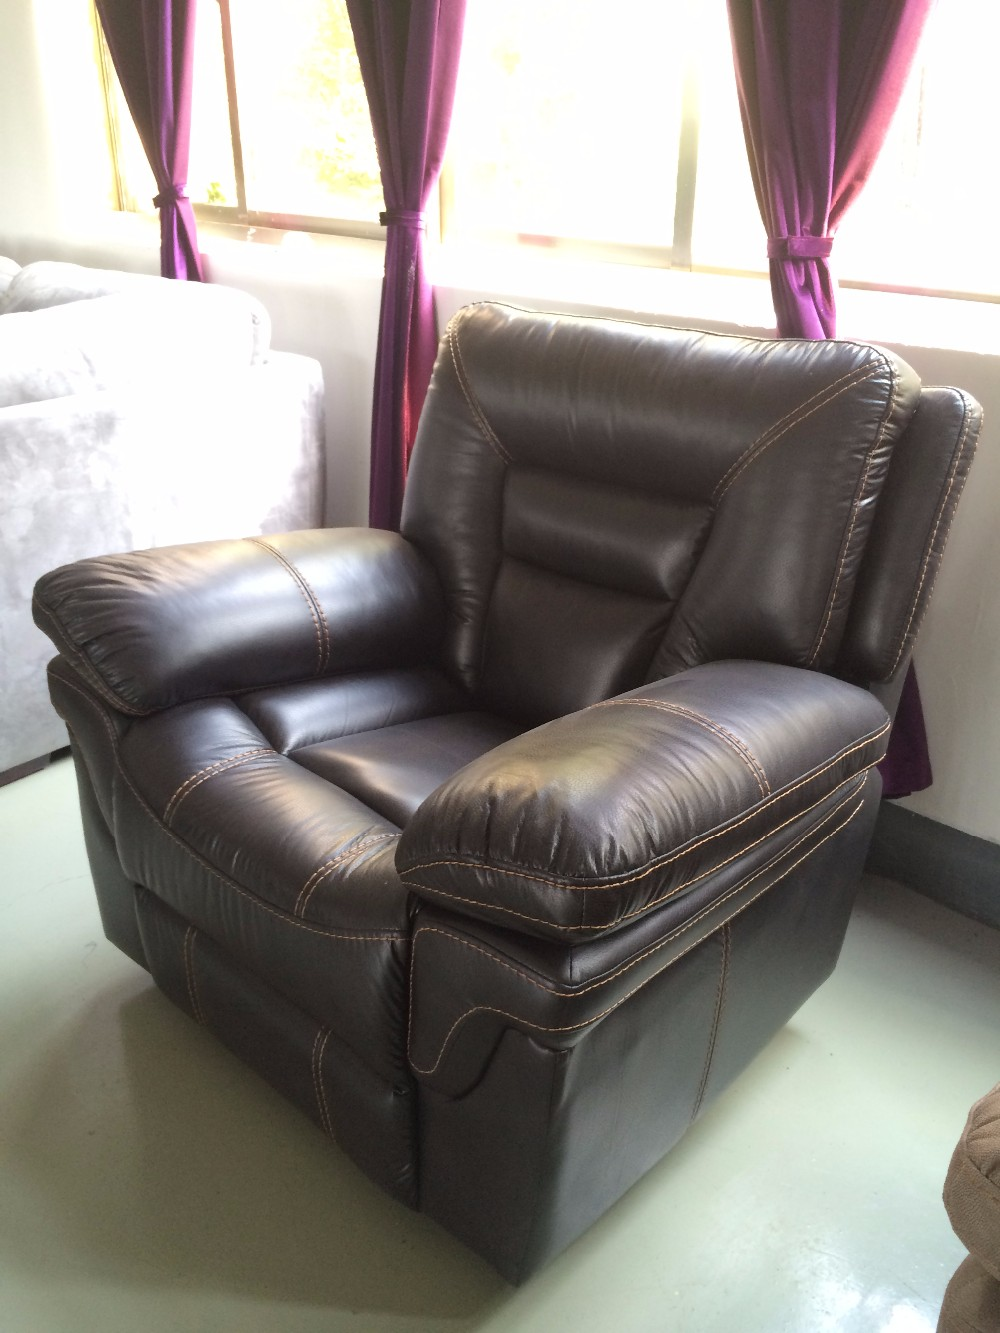 Furniture Recliner Chair Alibaba China Furniture Recliner Arm Sofa,protective Sofa